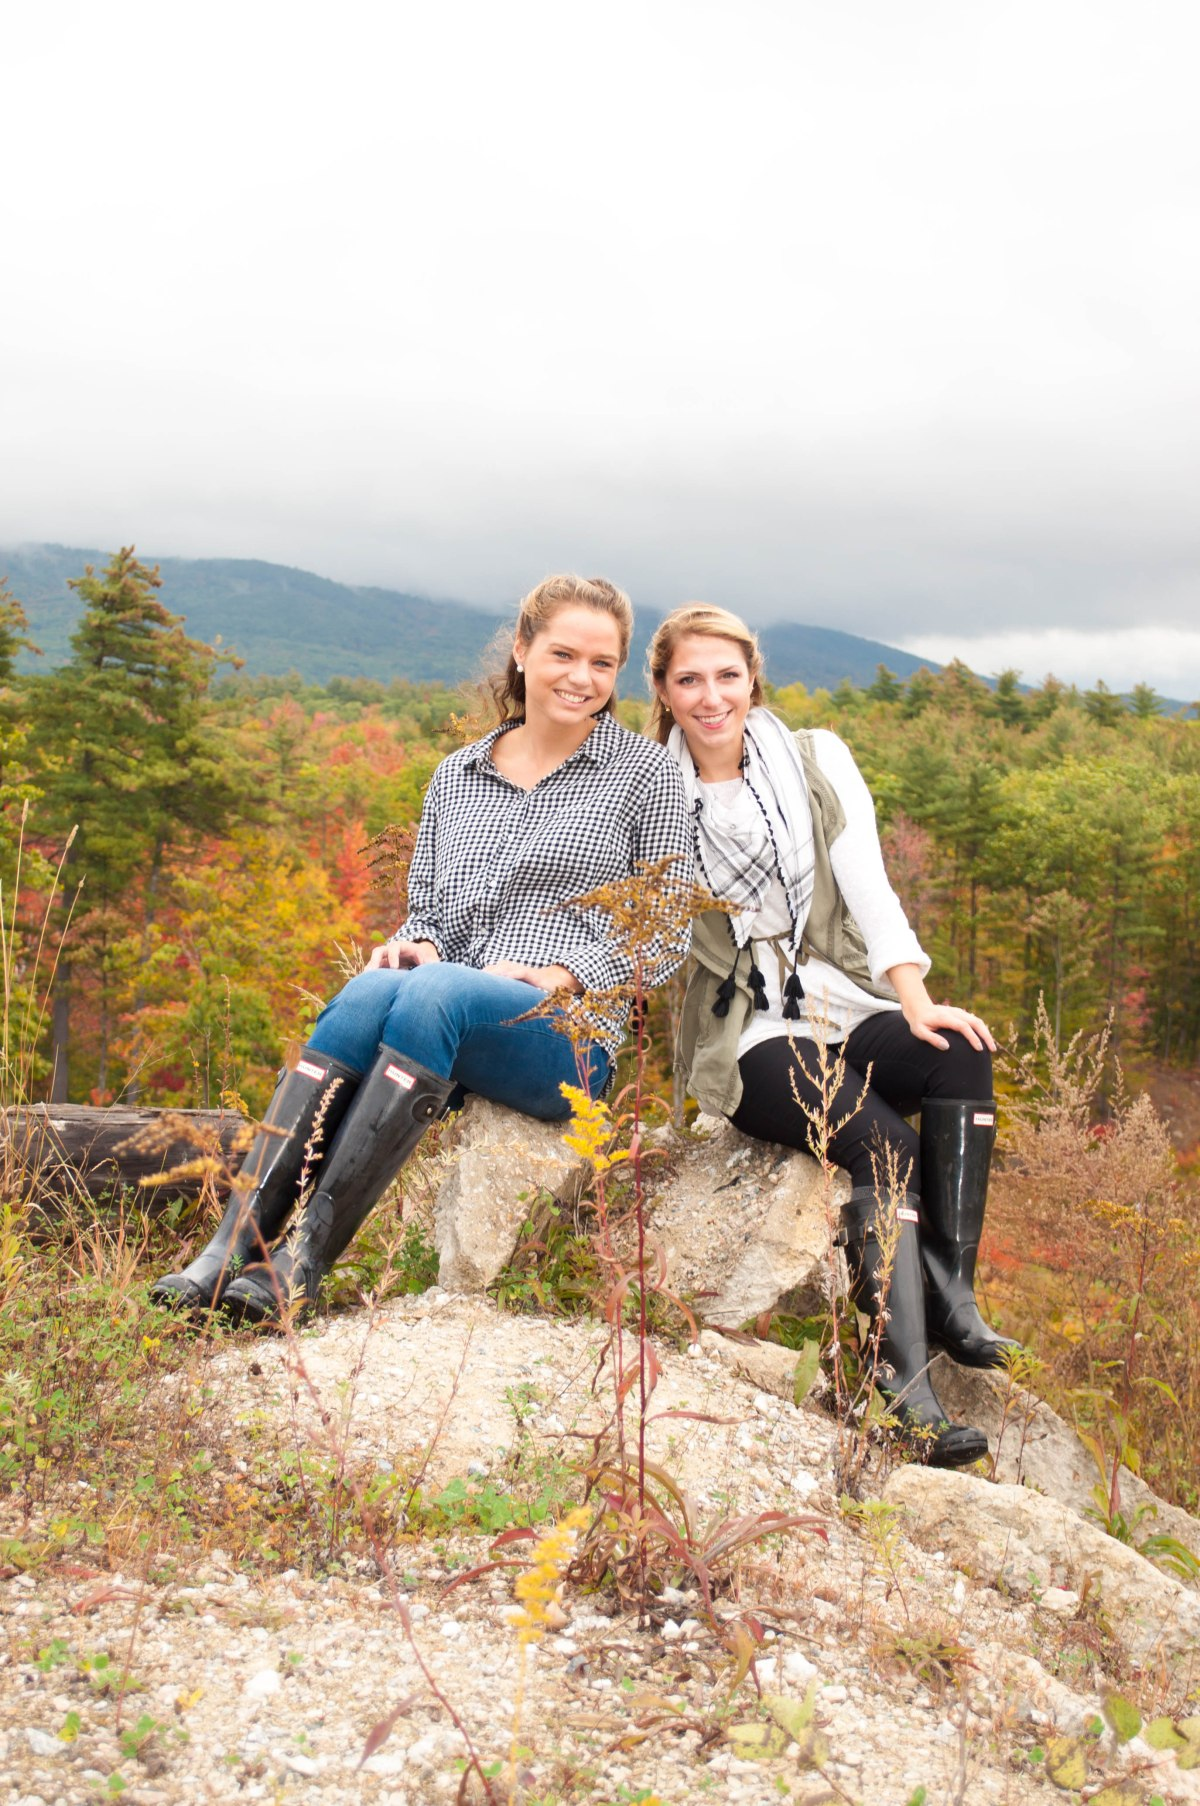 Autumn Wonderland: A Trip to the White Mountains